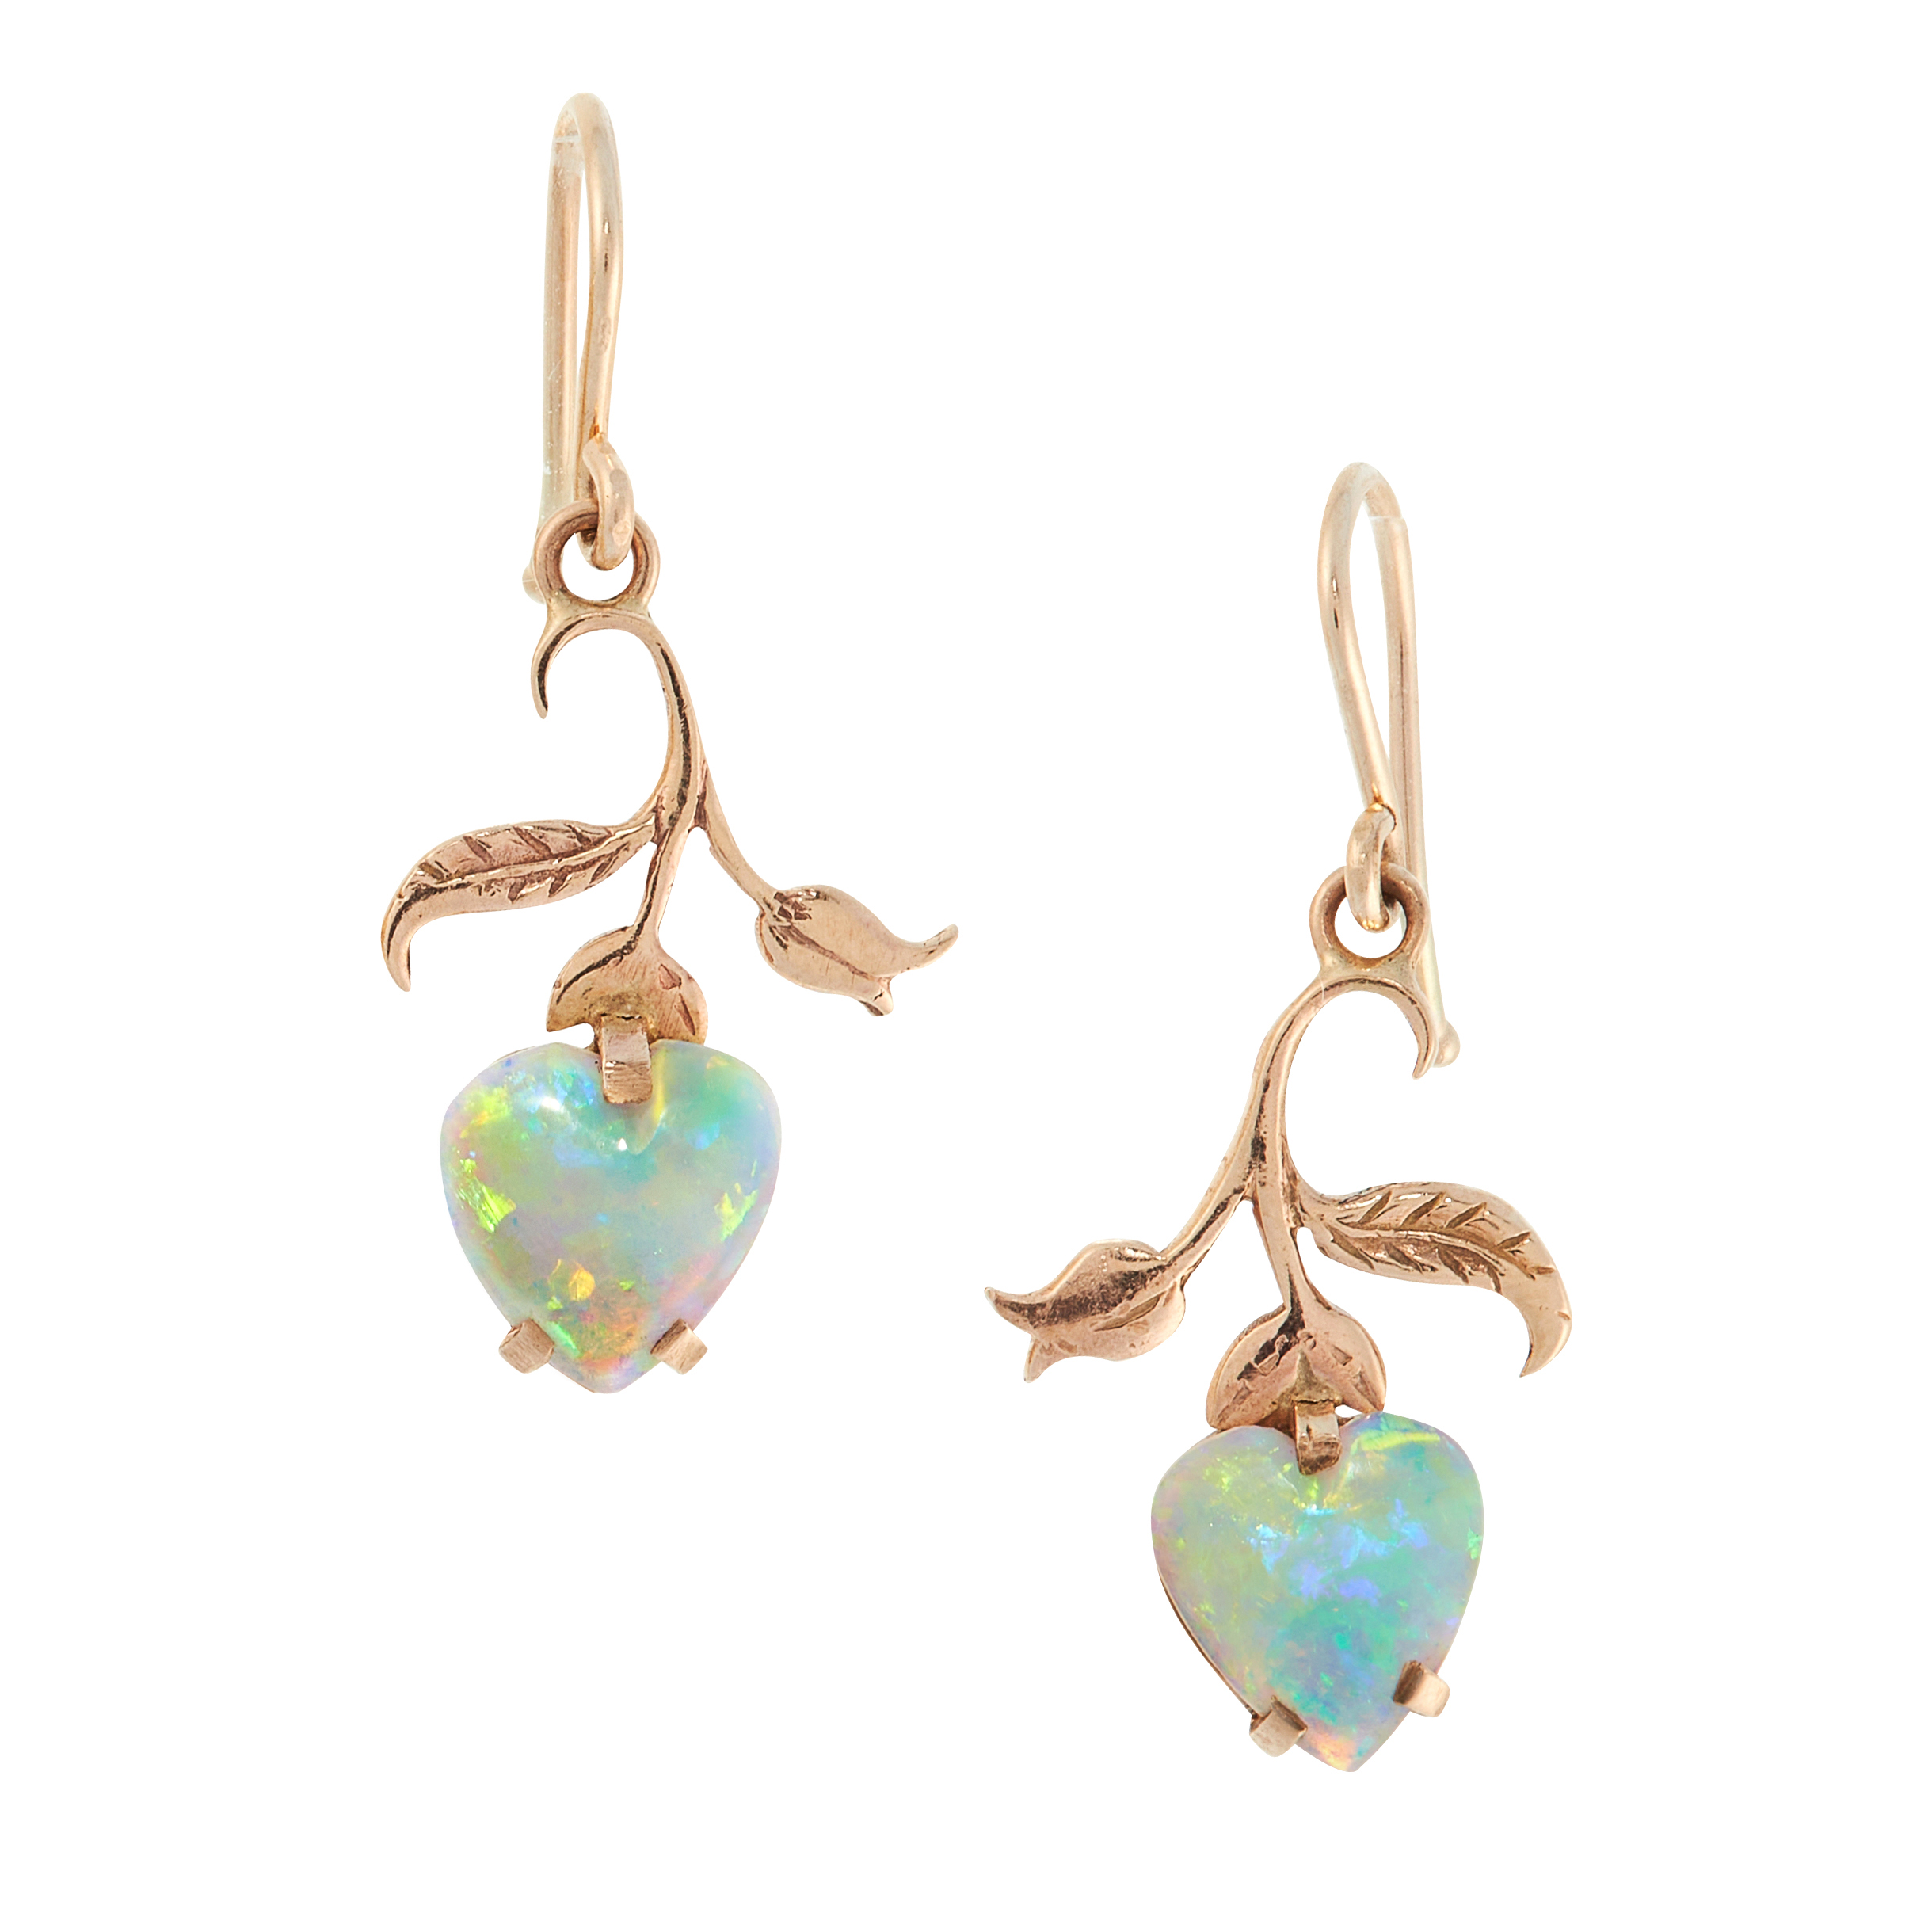 A PAIR OF OPAL EARRINGS in high carat yellow gold, each set with a heart shaped opal cabochon